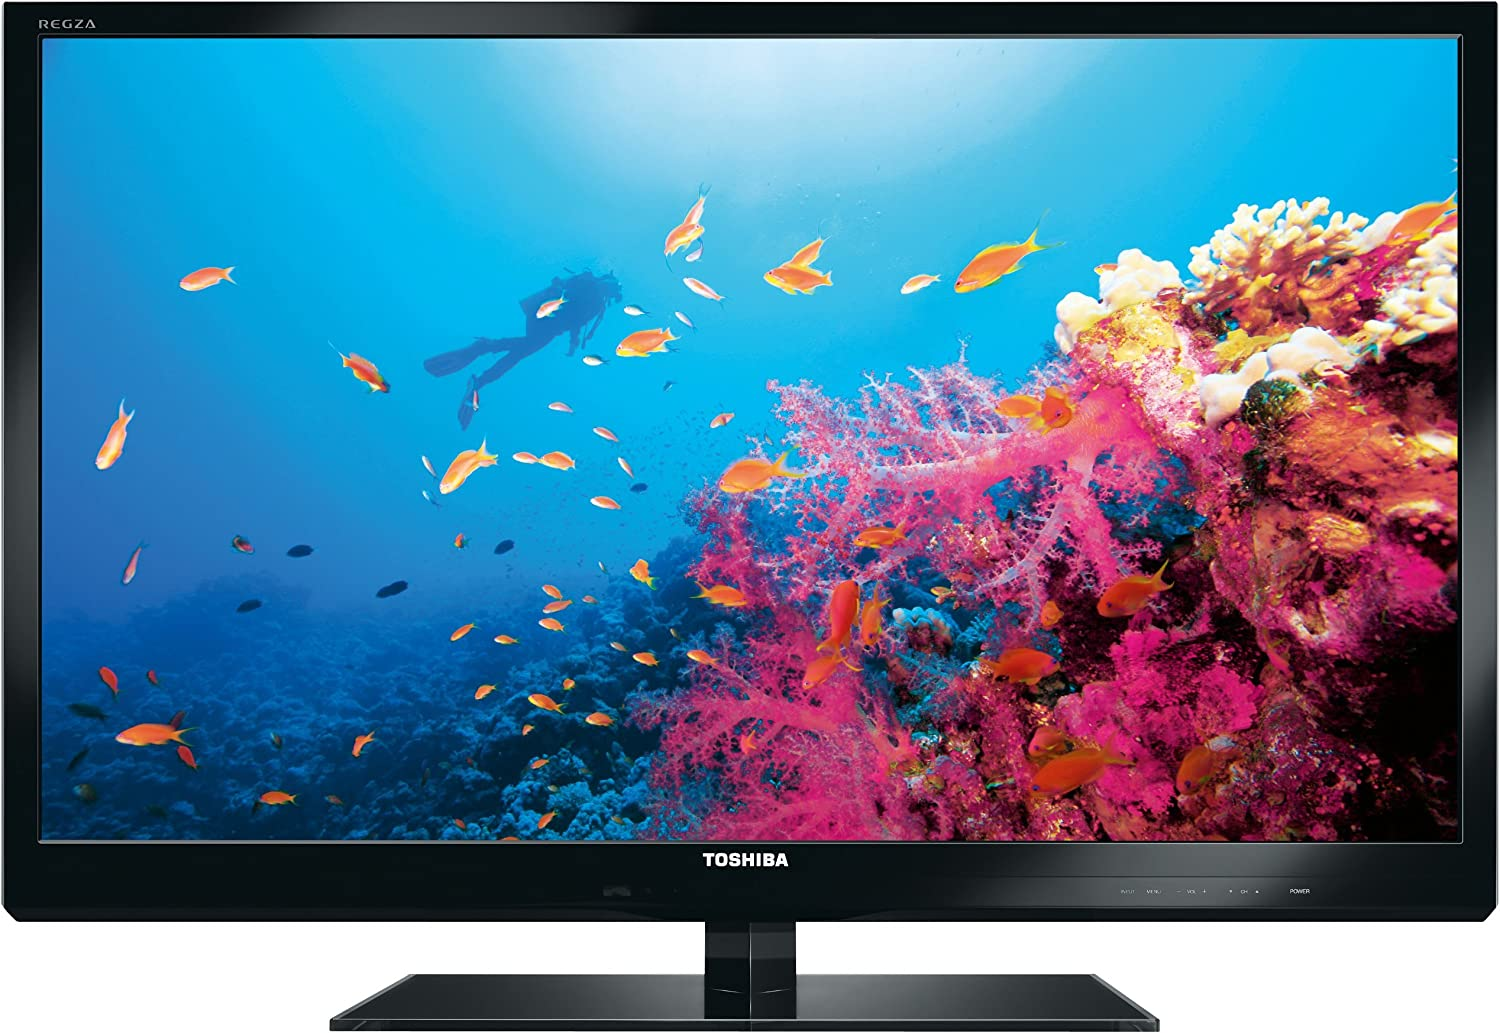 Toshiba 37 SL 833 G - Televisor LED Full HD 37 pulgadas: Amazon.es: Electrónica